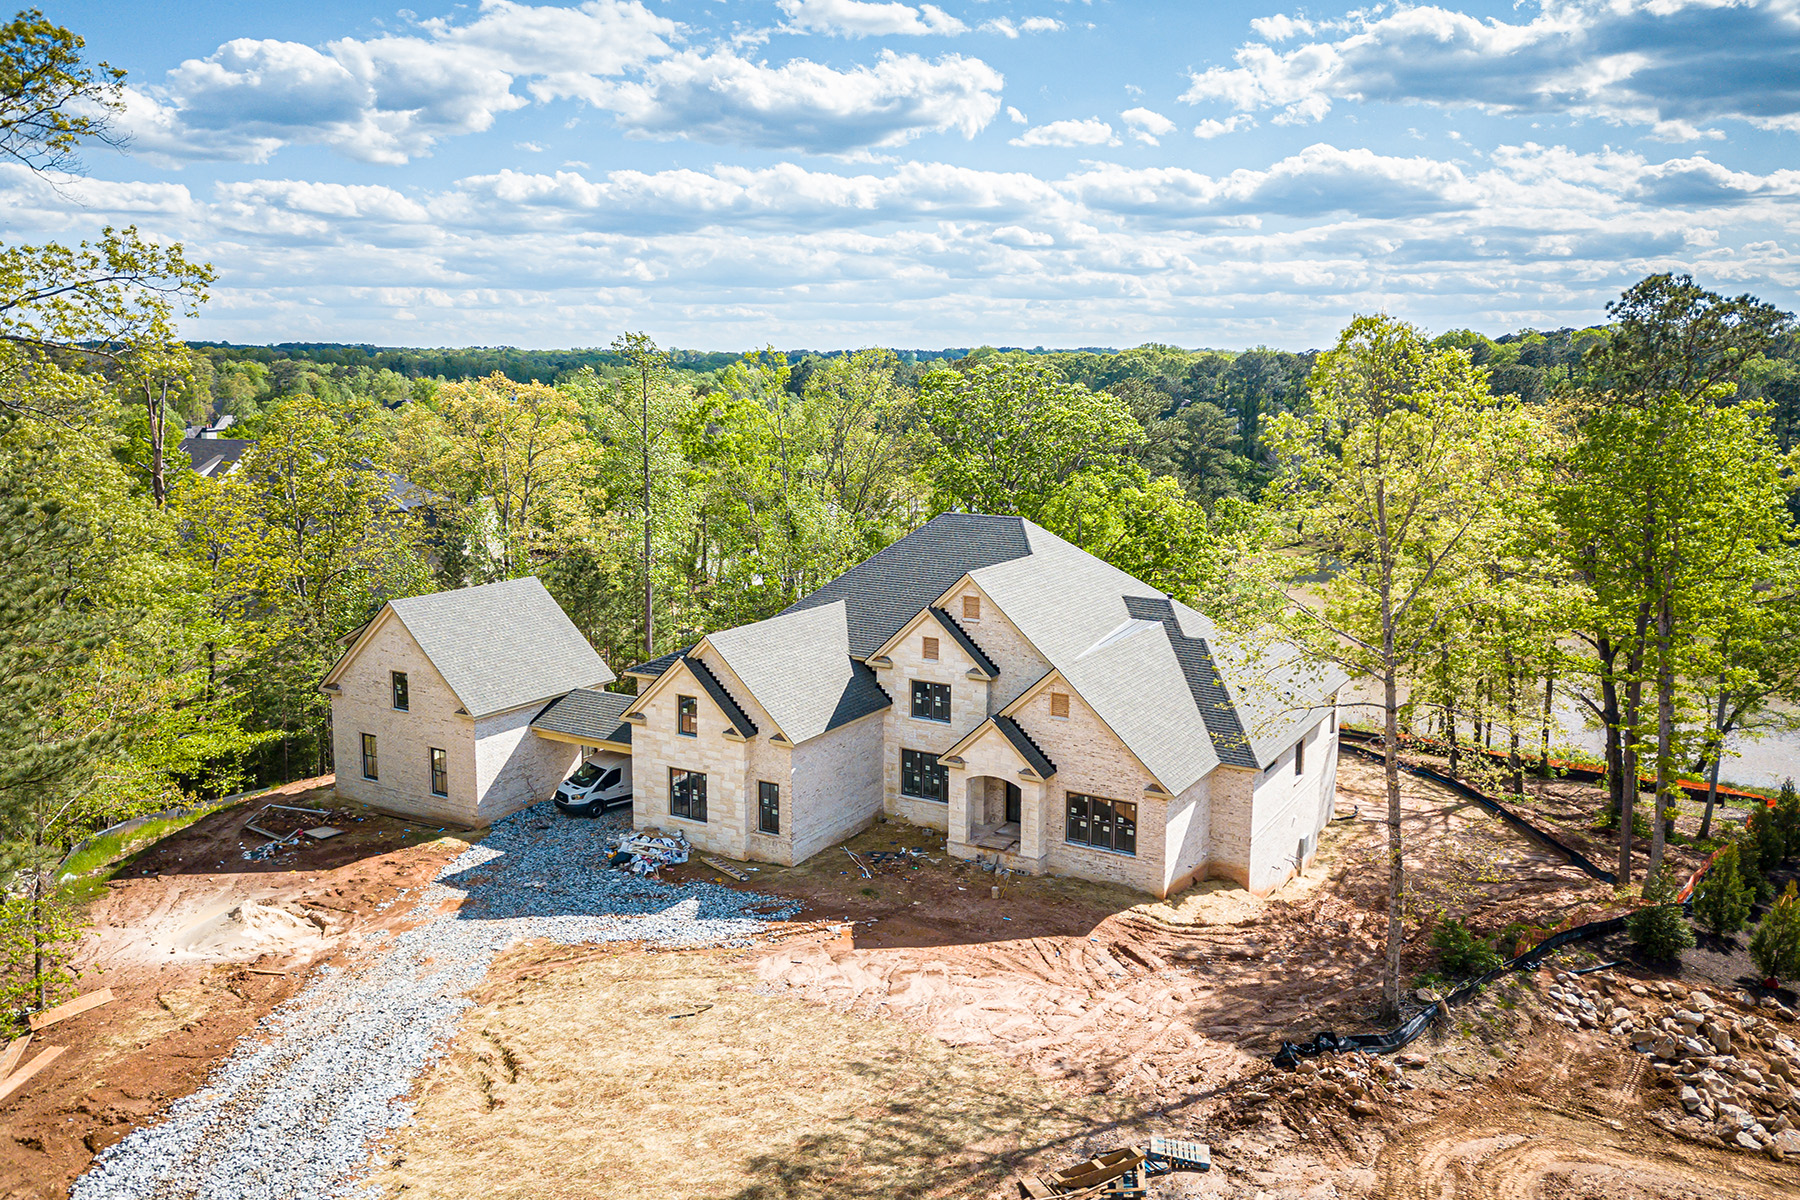 Single Family Homes for Sale at Spectacular New Construction Overlooking Private Lake 16038 Manor Club Drive Milton, Georgia 30004 United States